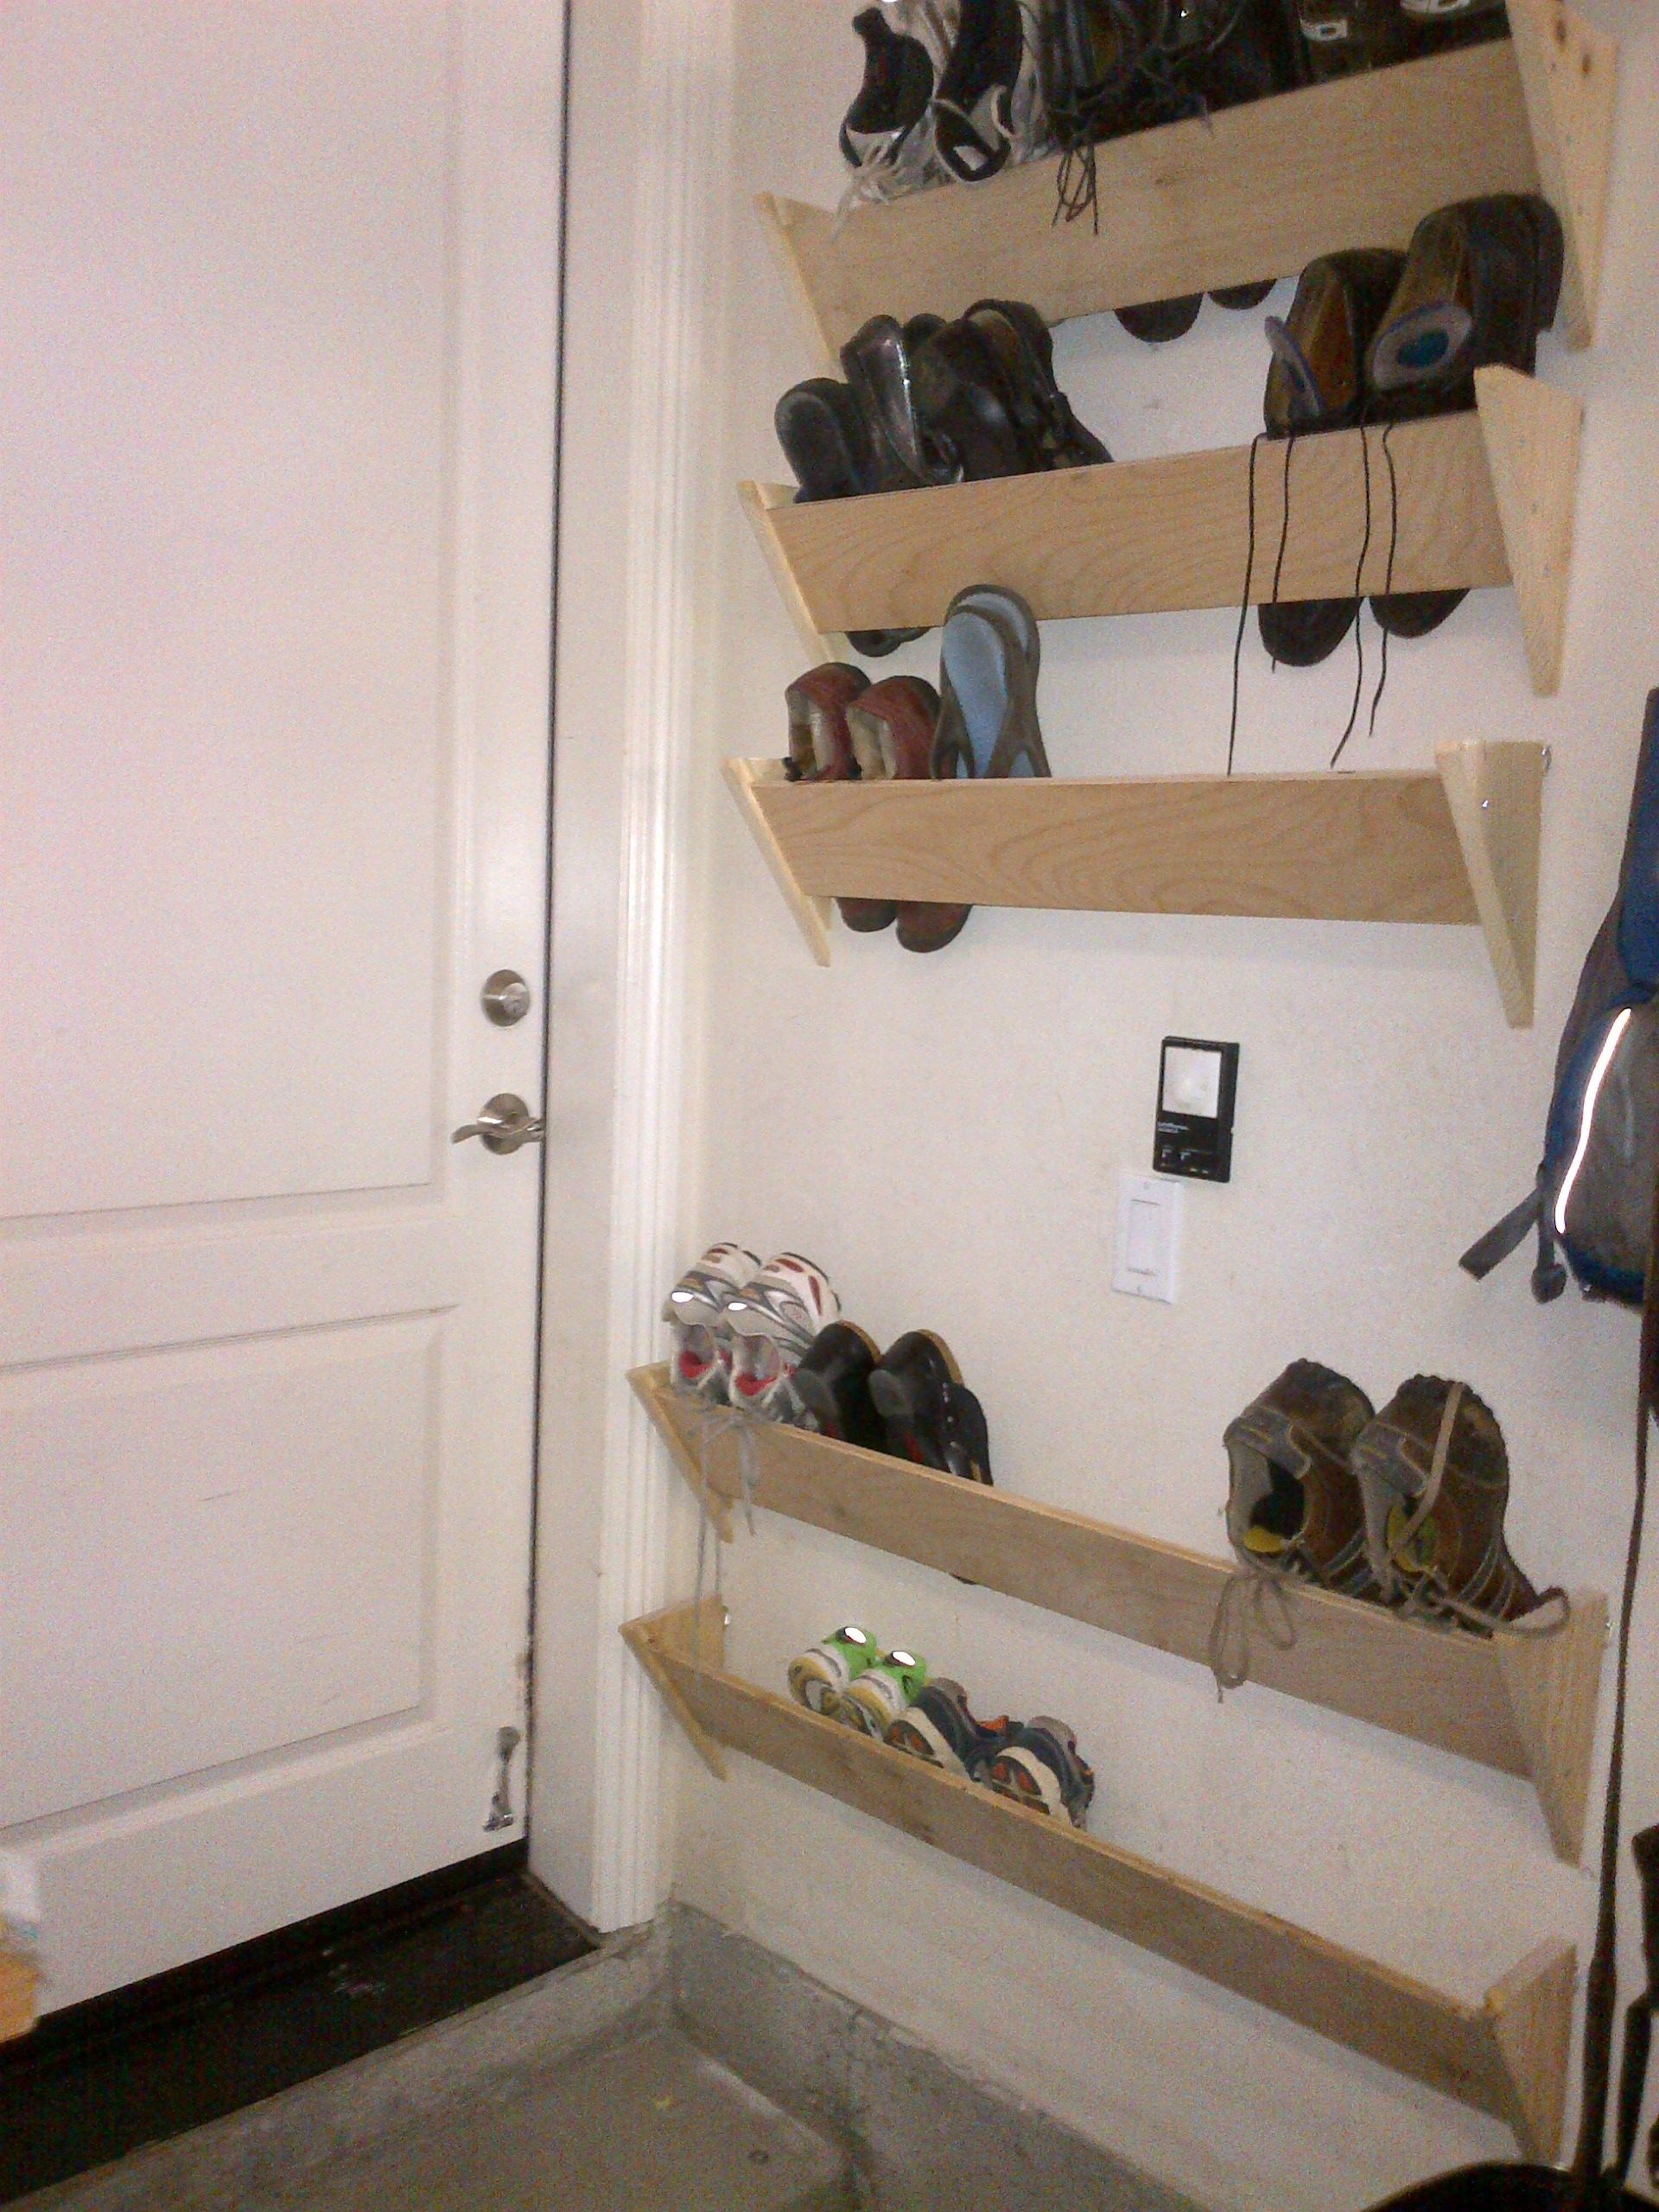 Hallway wall storage  homemade shoe racks for our garage walls by the house entrance